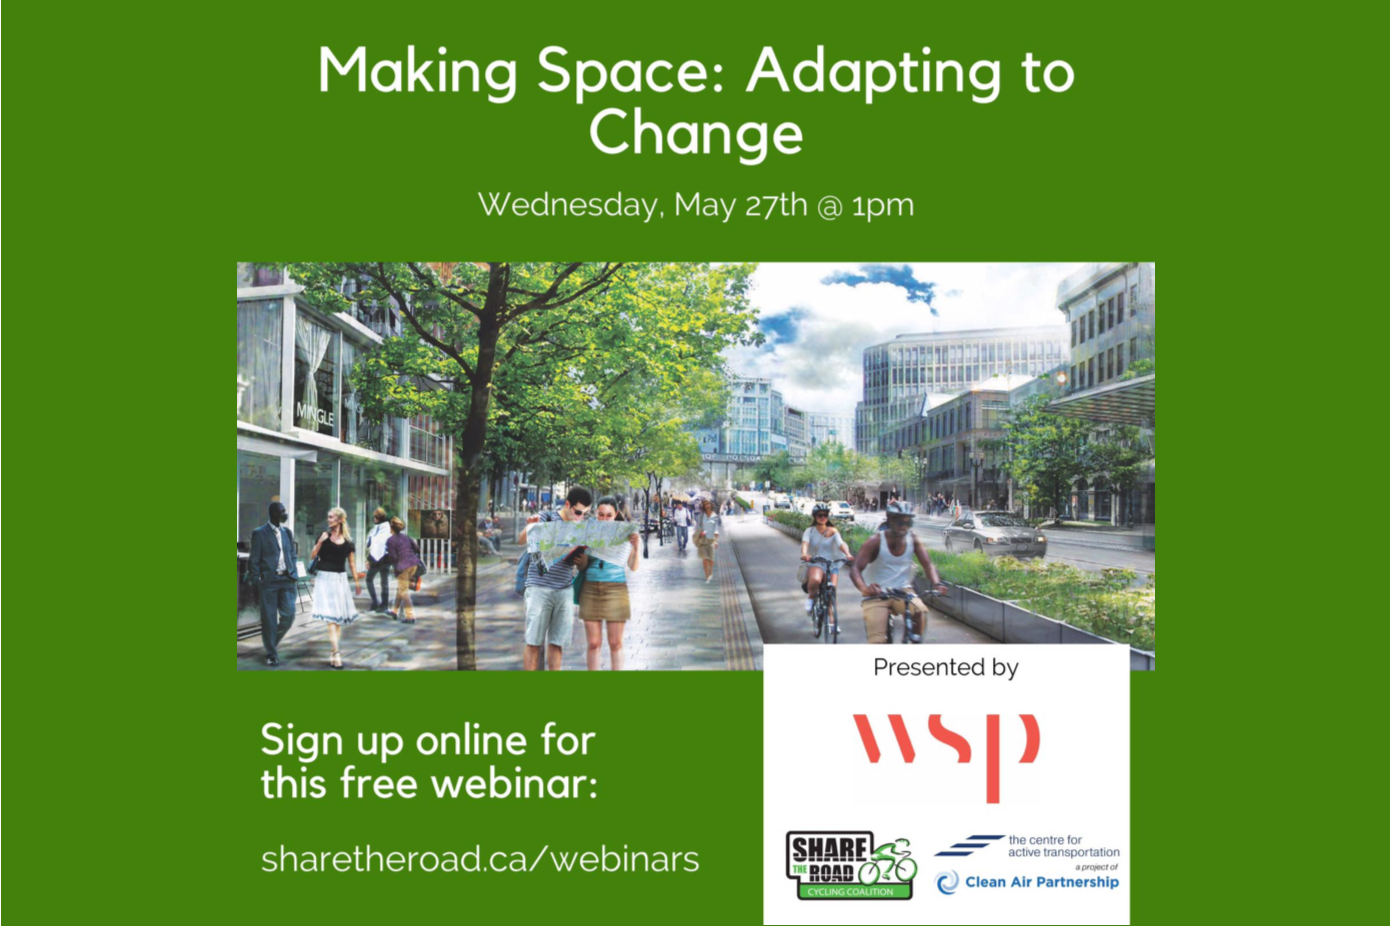 Promotional Image for webinar